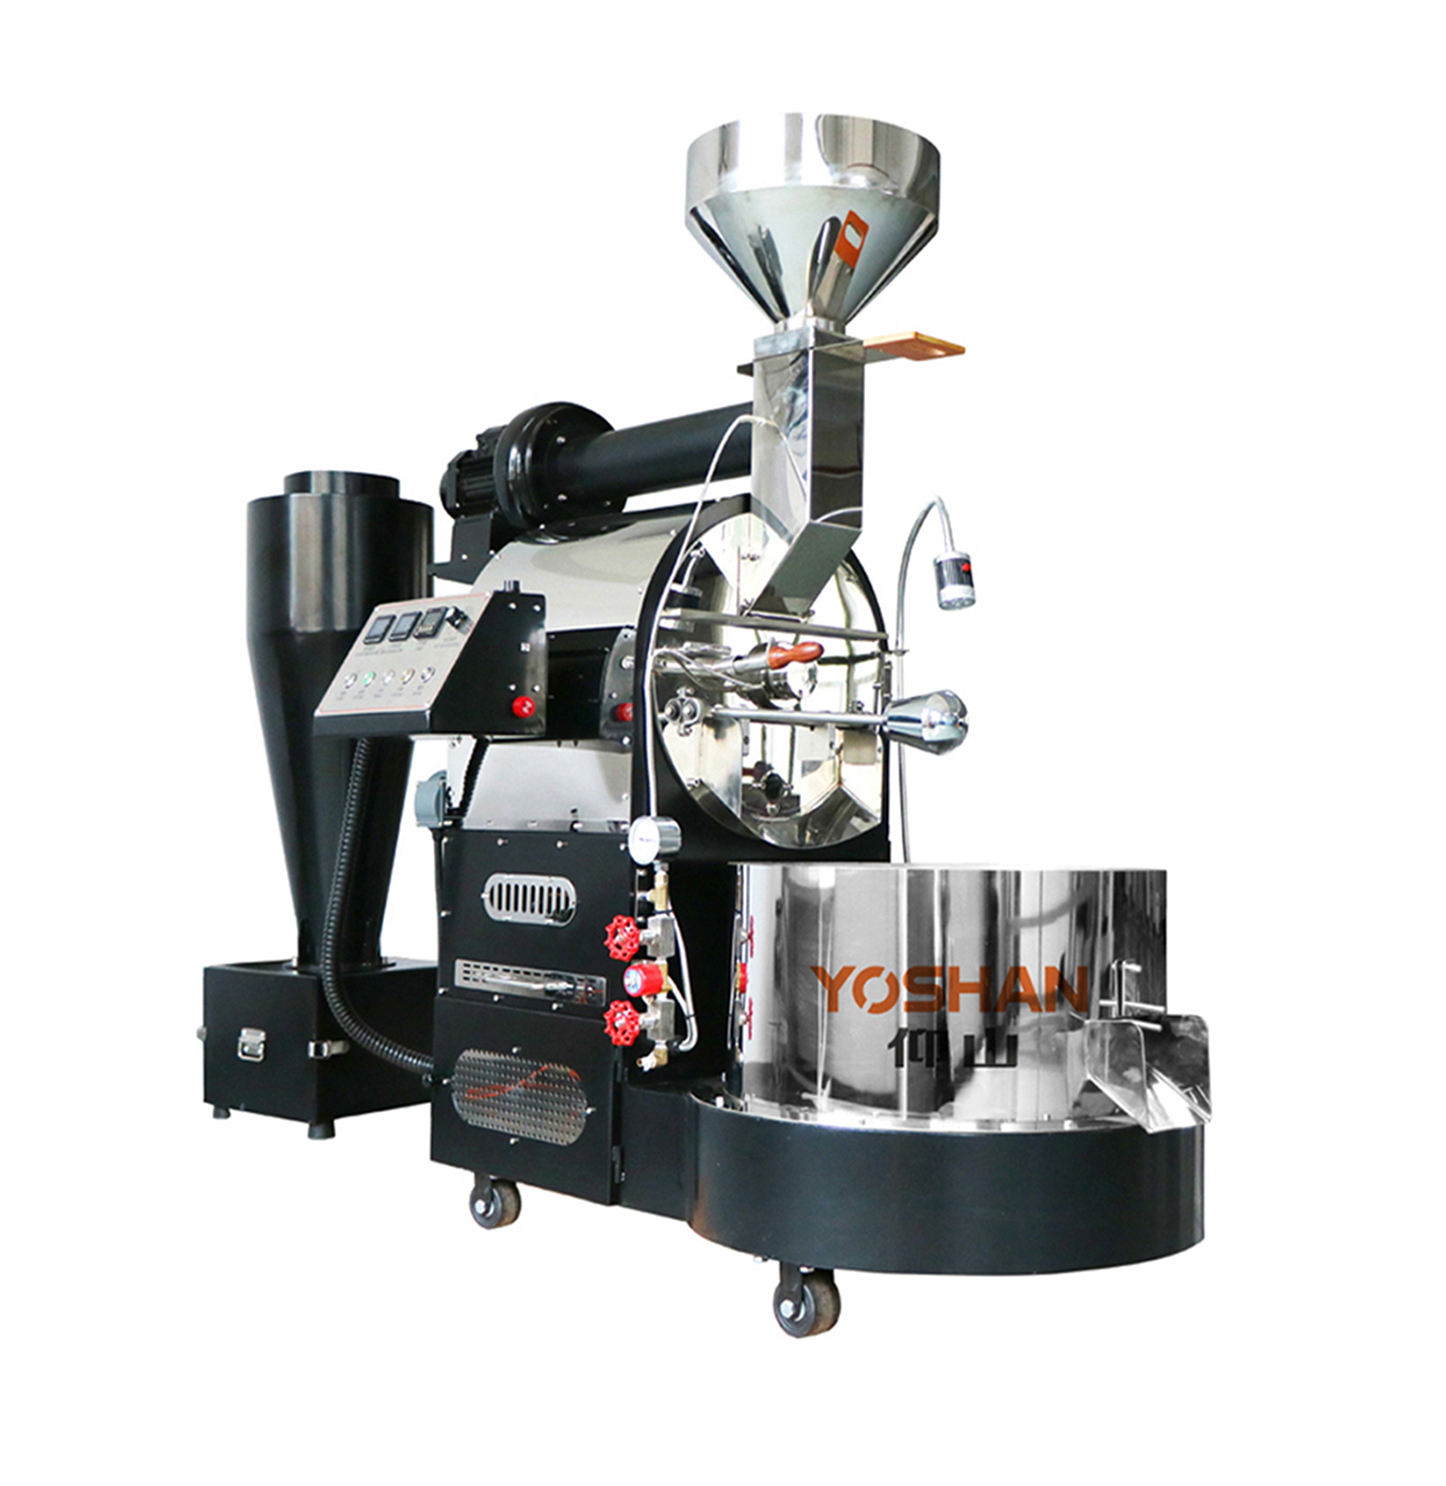 Giesen LPG gas heating w15a gastcoffee roaster guangzhou north tj 067 industrial coffee roasting equipment 6kg 12kg roaster